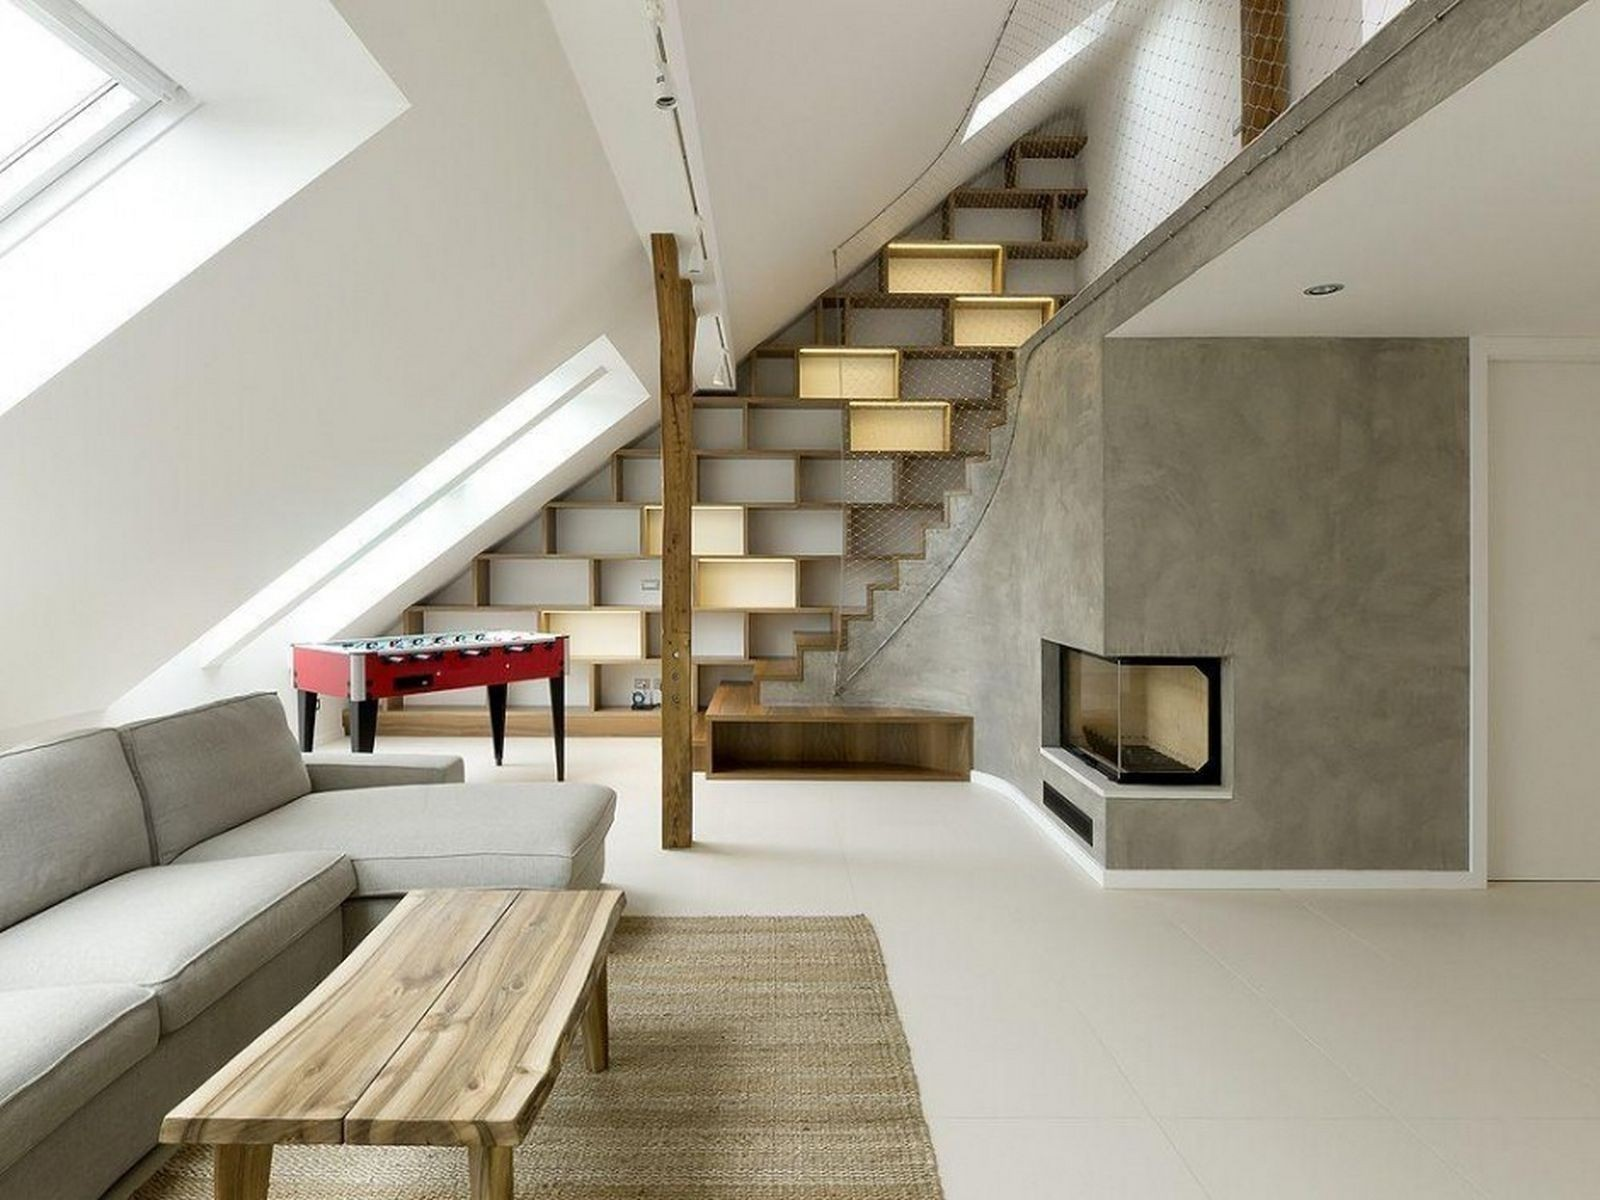 Loft Conversion Cost And Price Guide Average Costs In UK London - Bathroom conversions cost